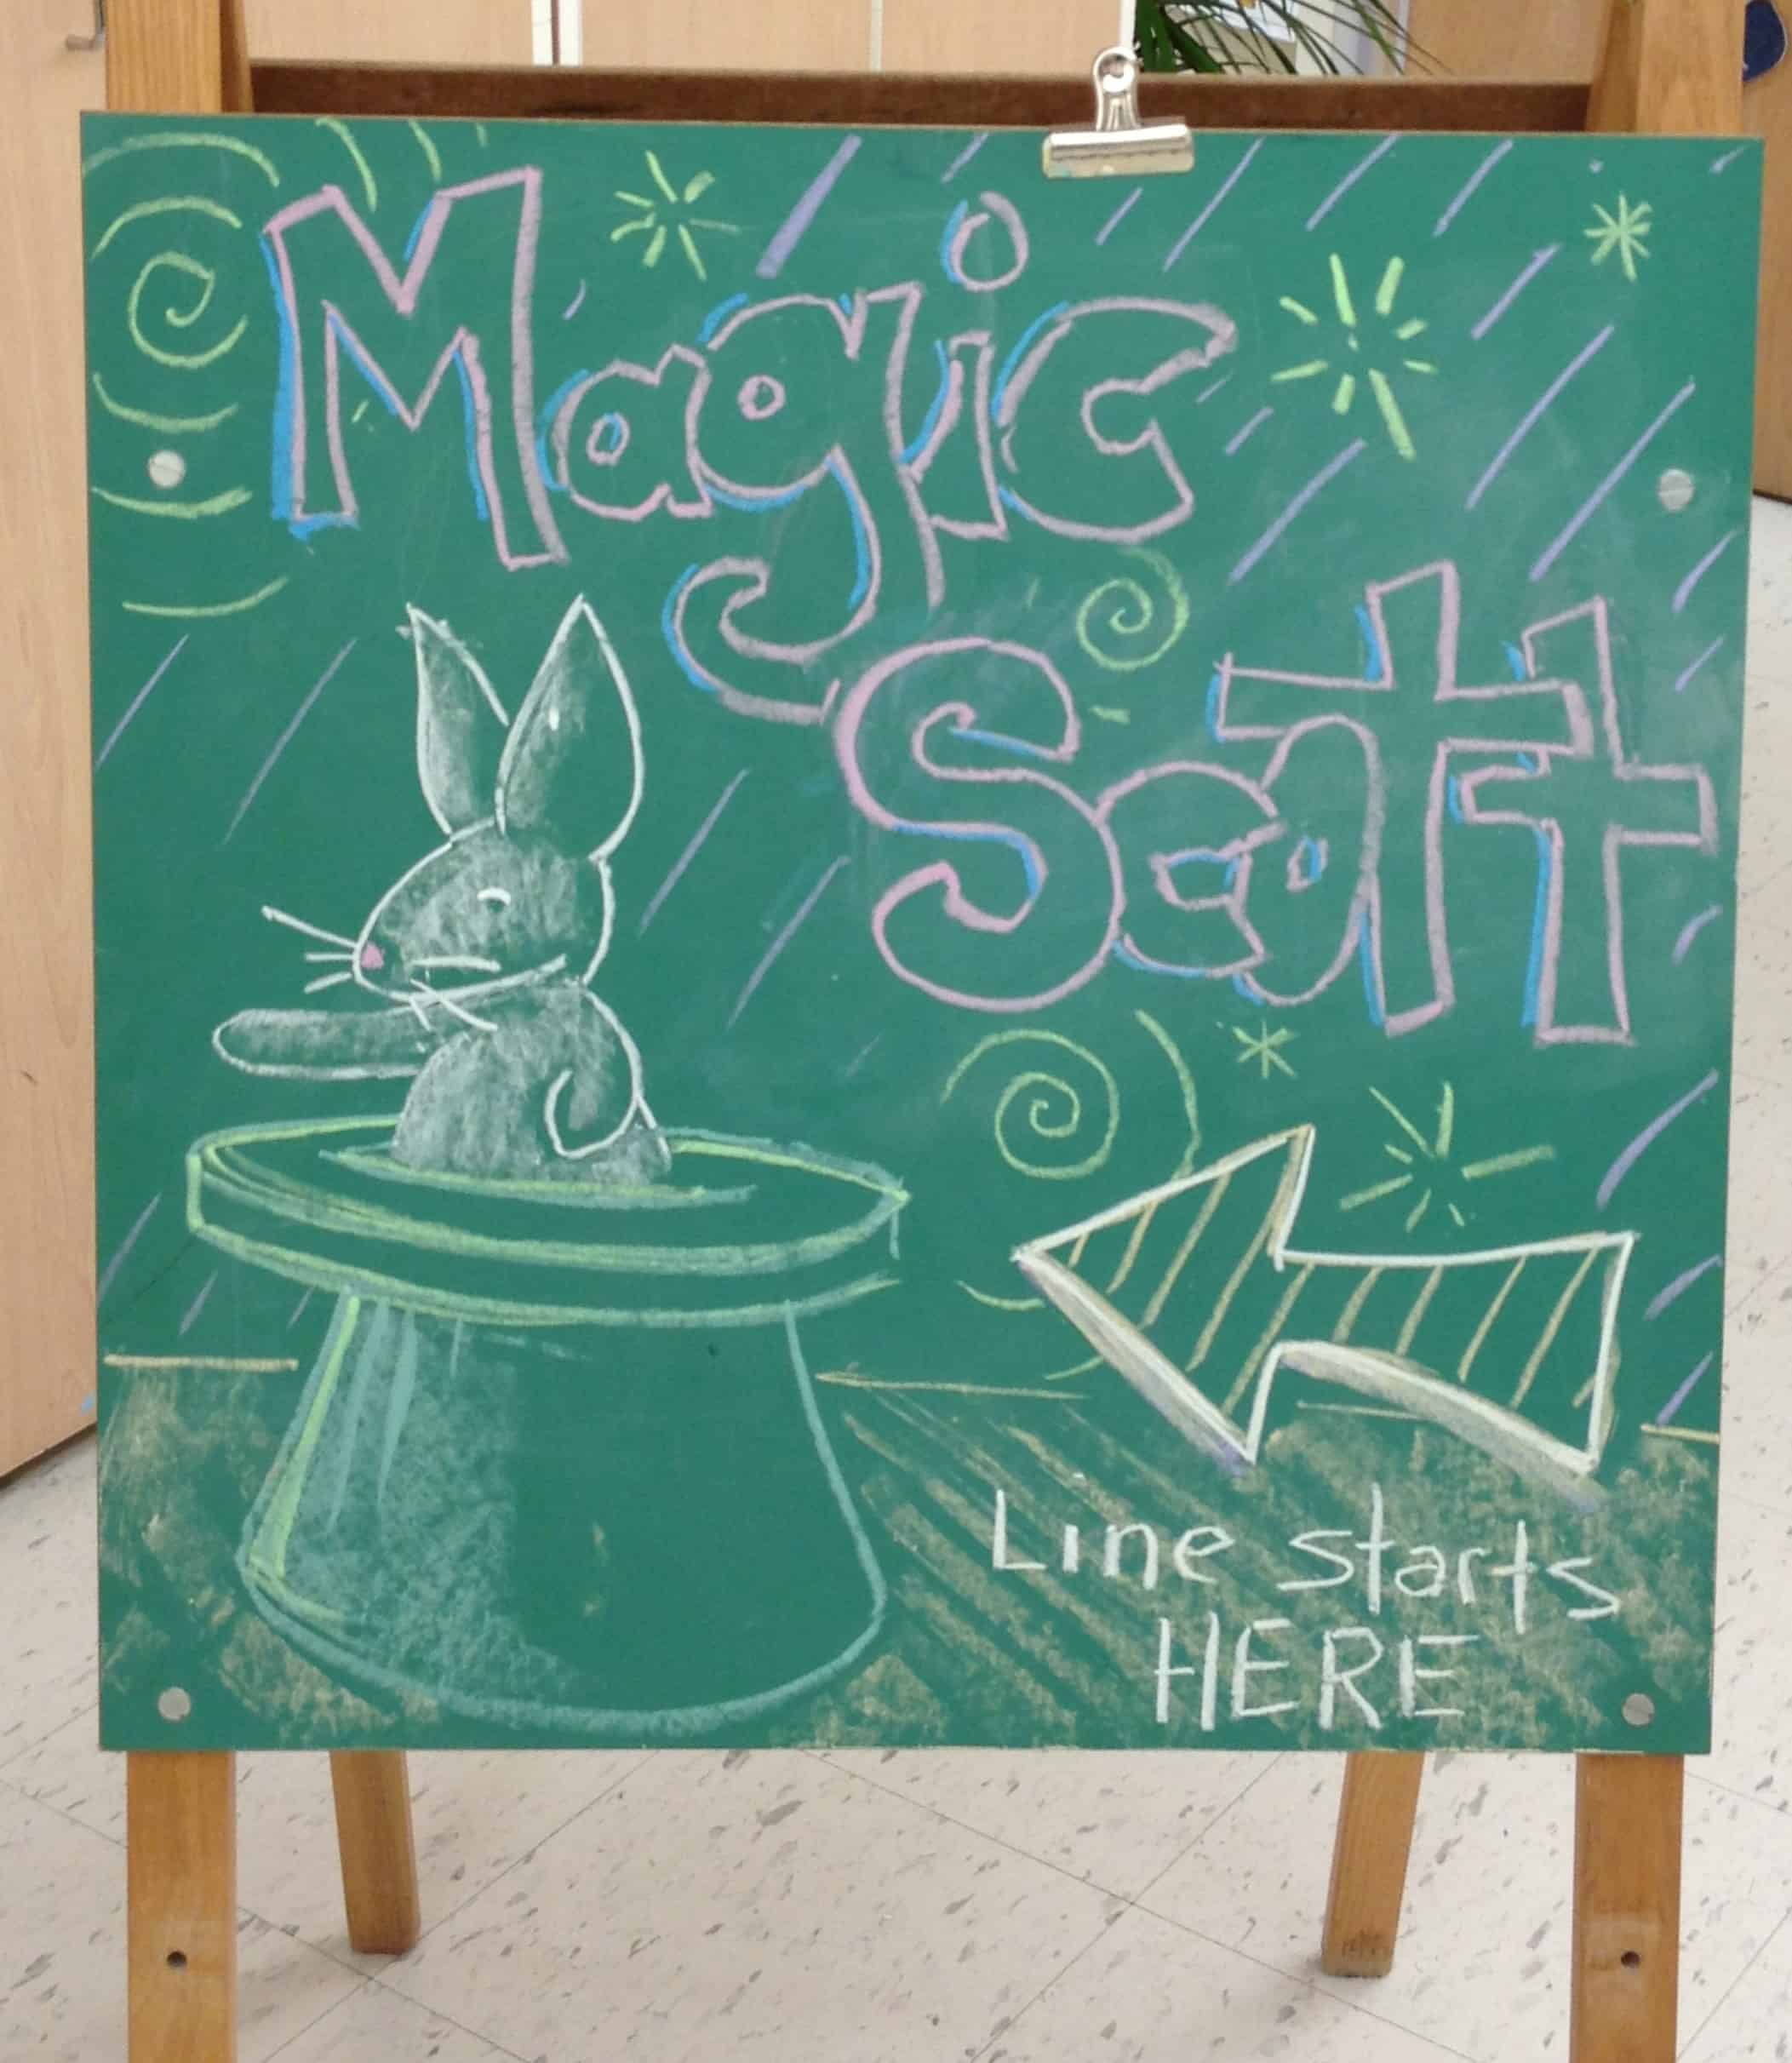 Magic Scott line starts here chalk drawing